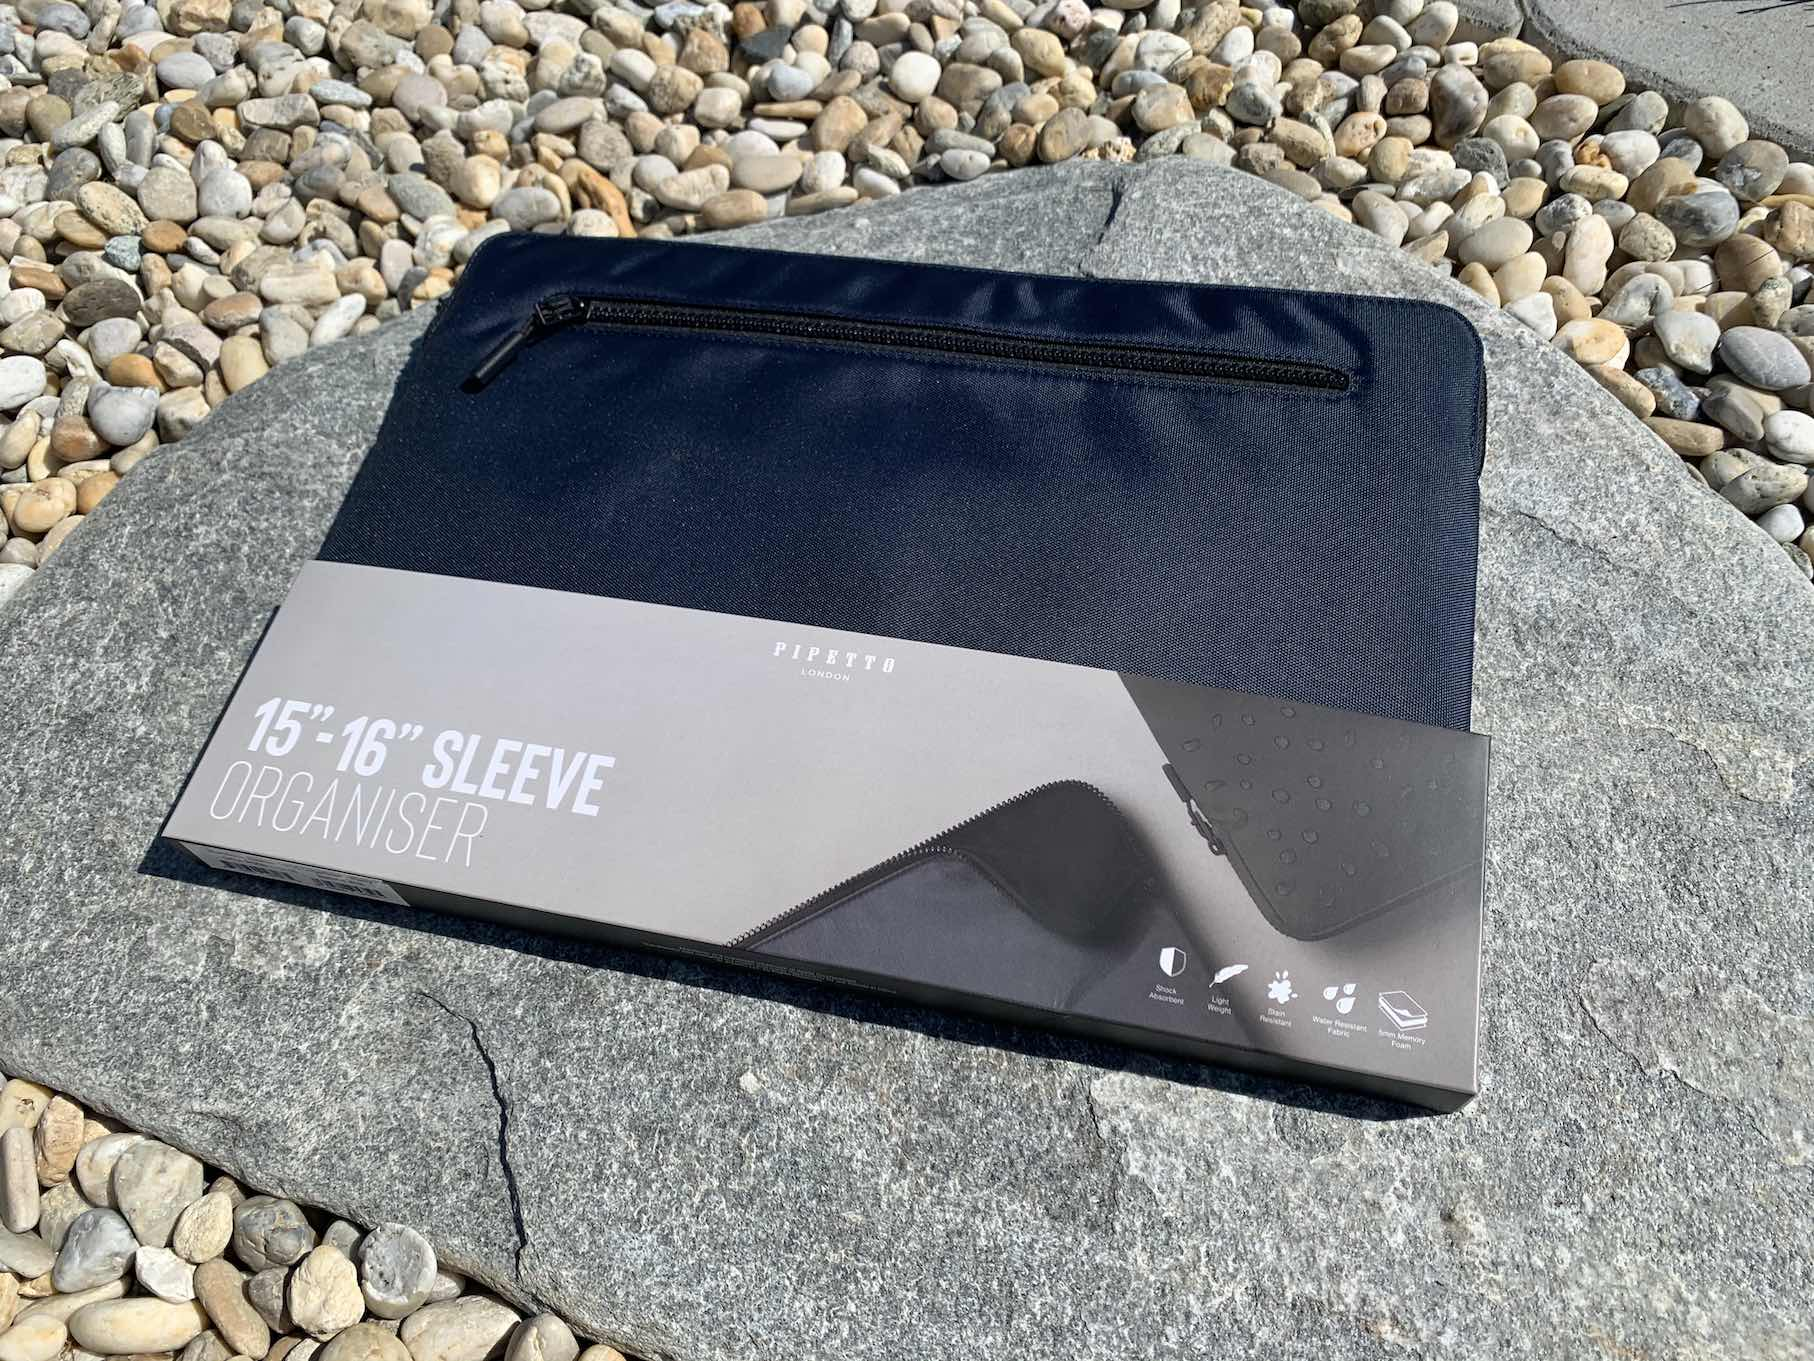 Pipetto protective case review for MacBook High durability and great - Pipetto protective case review for MacBook: High durability and great design